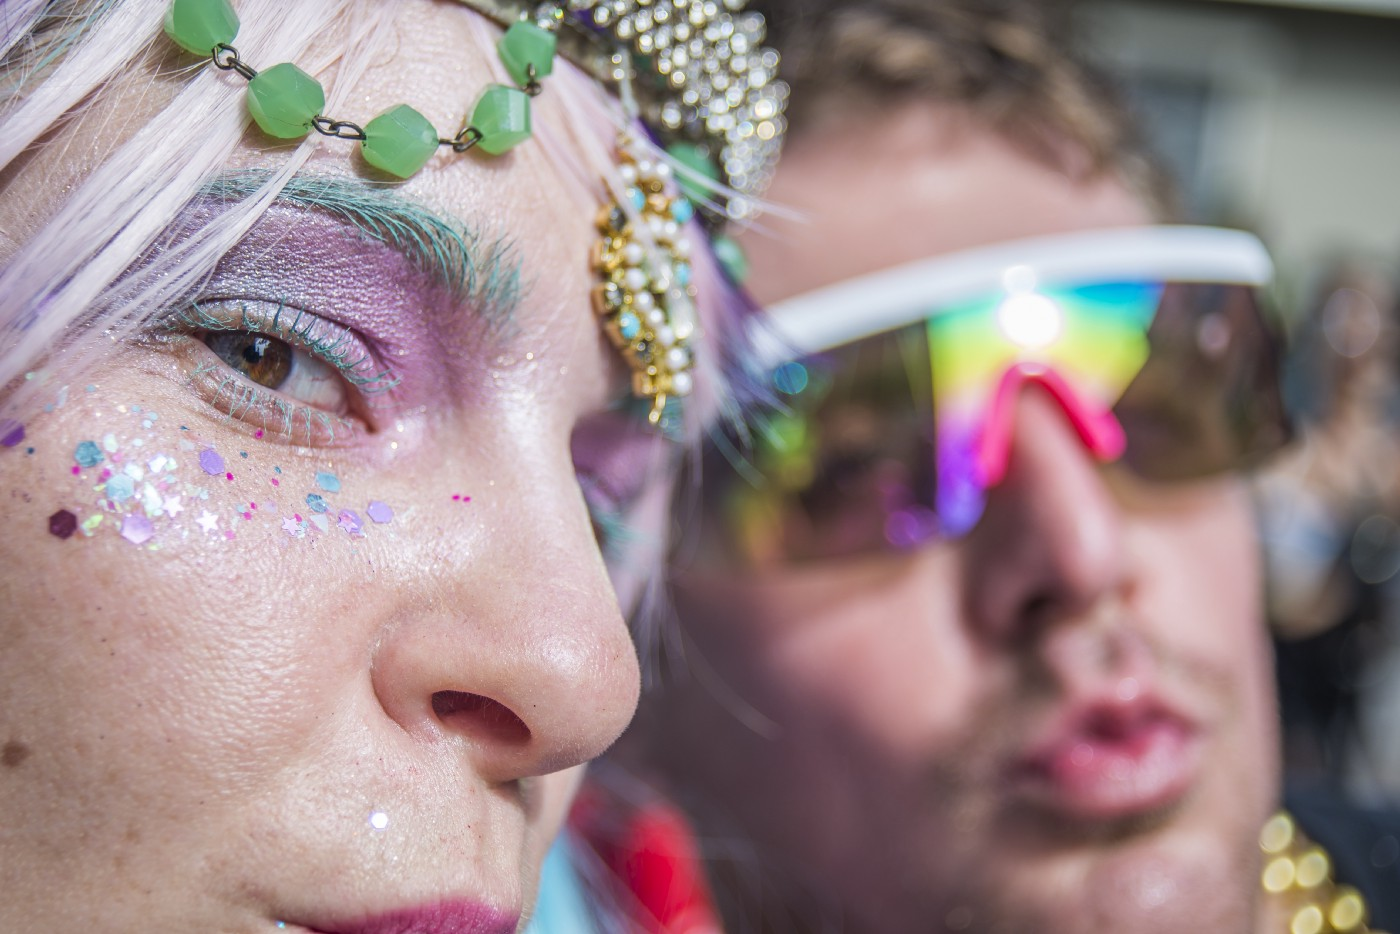 Close up of two people with colorful accessories.